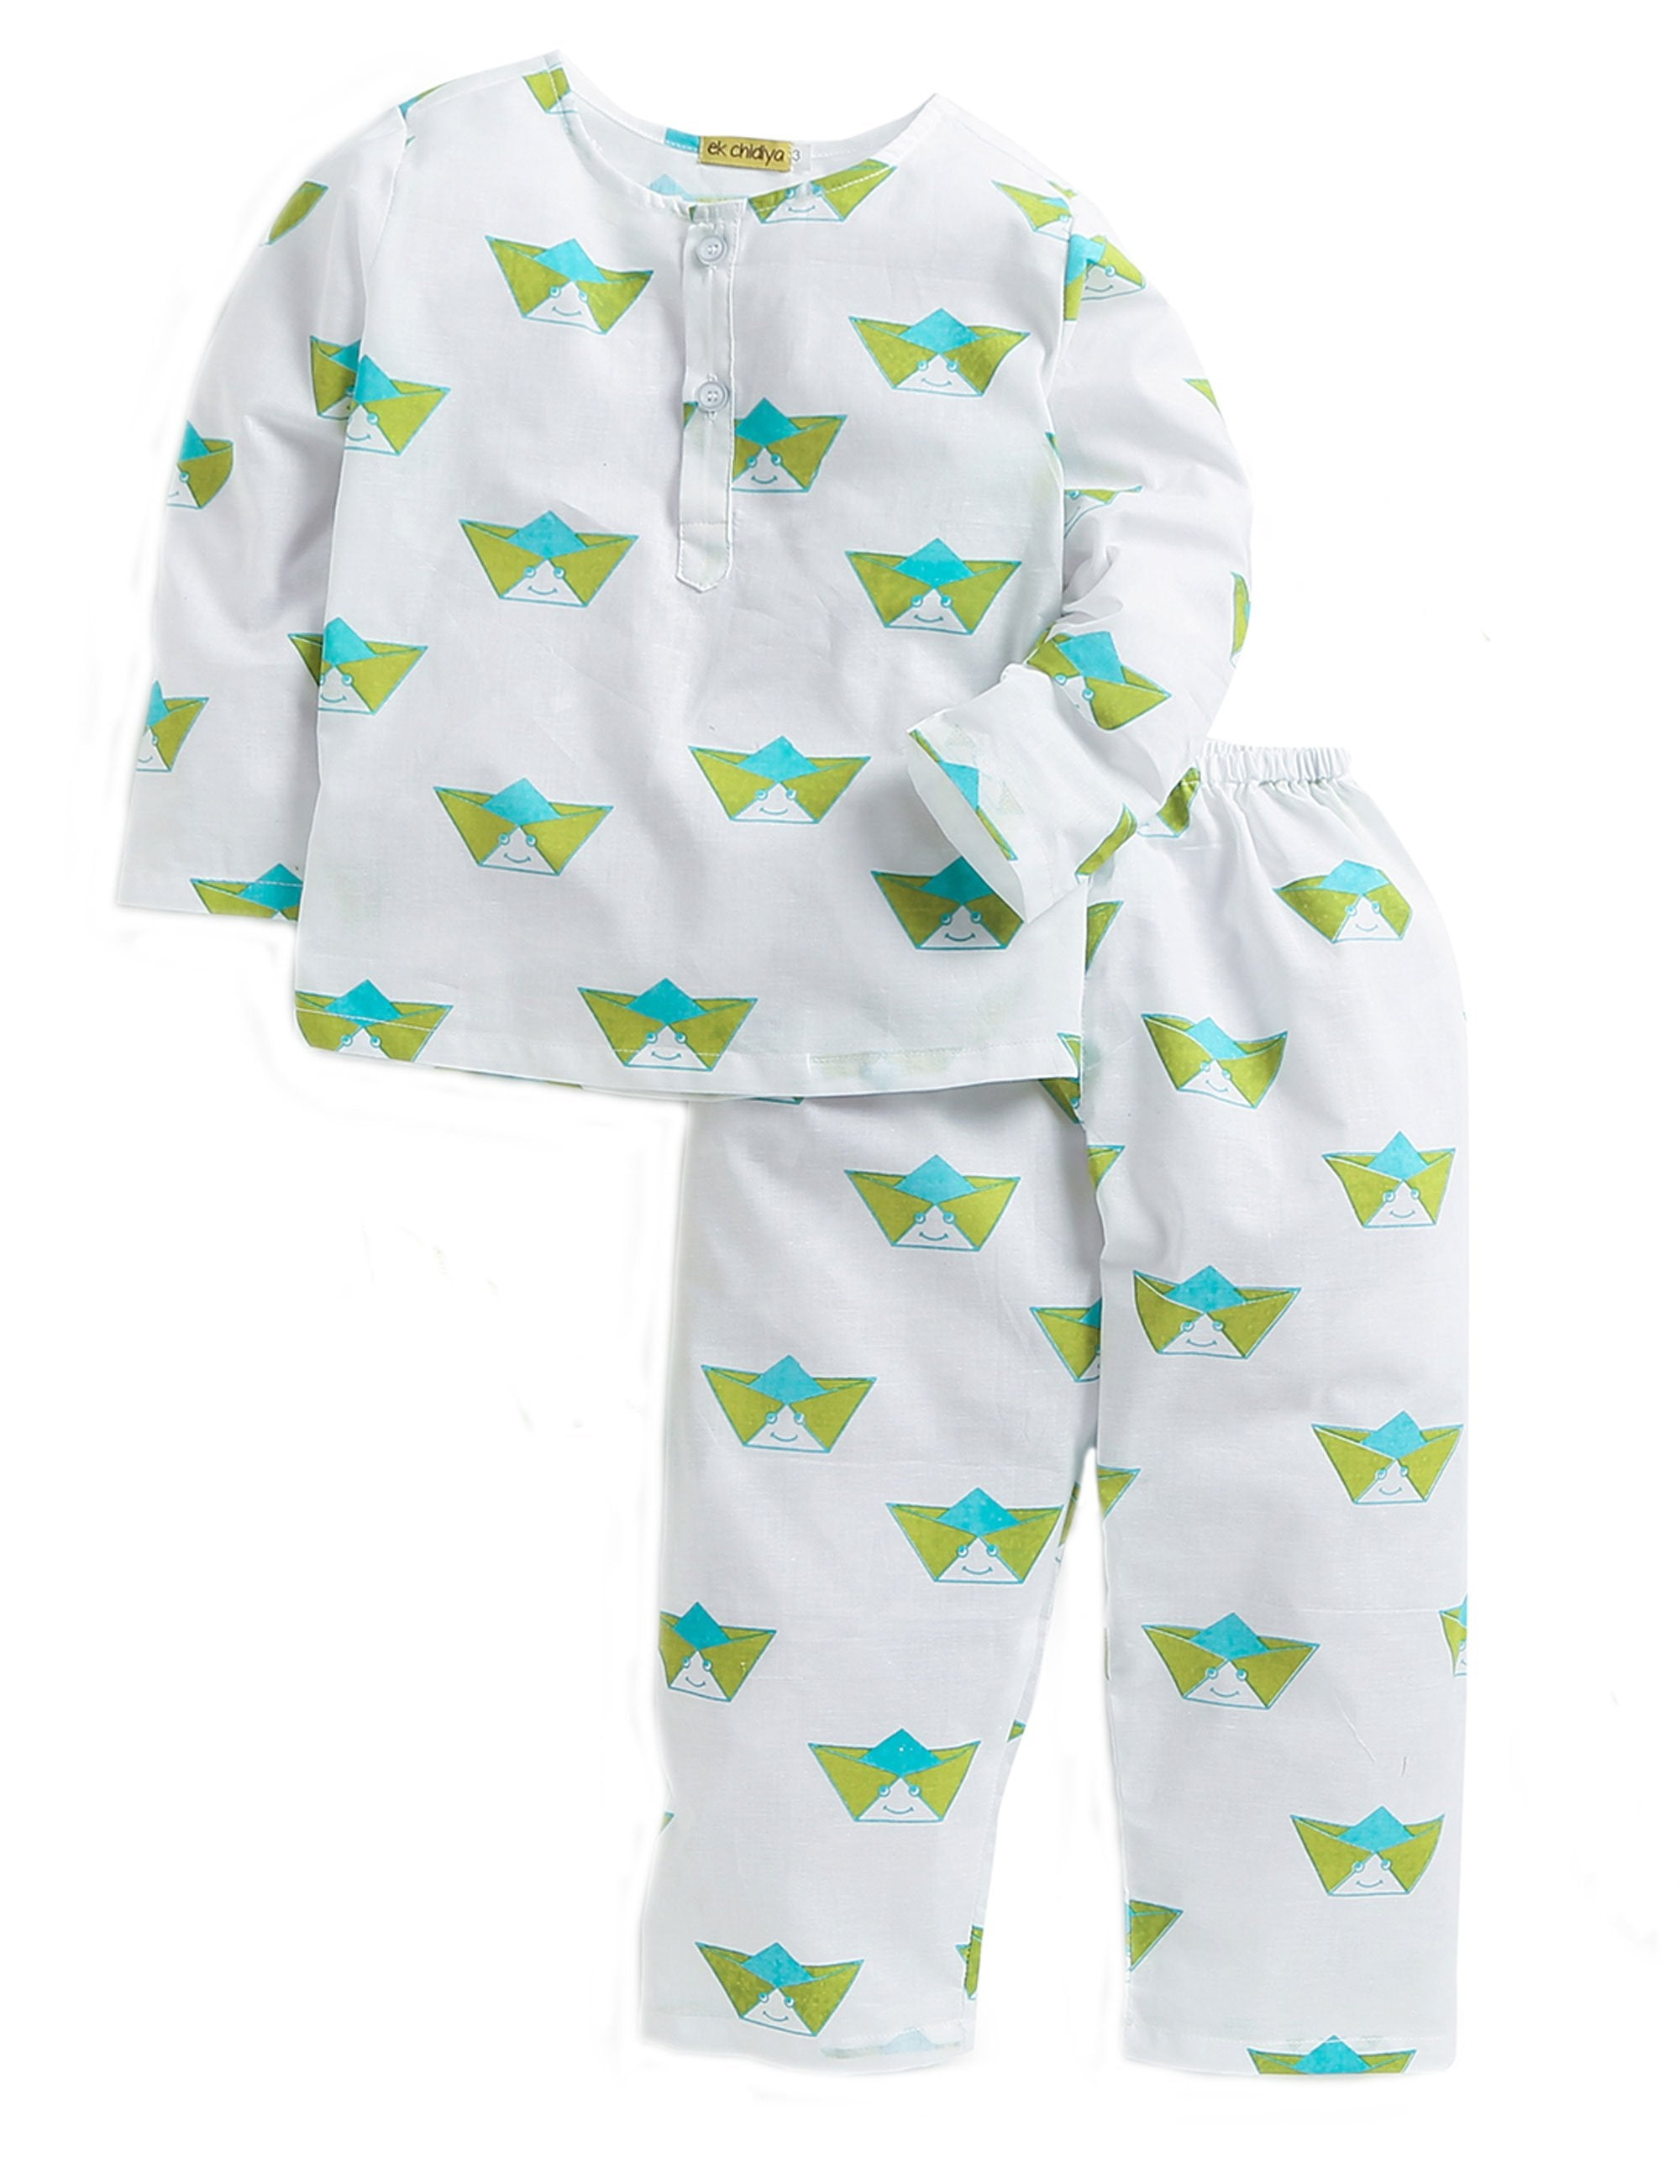 Paper Boat Printed Nightwear In White and Green Colour for Boys and Girls